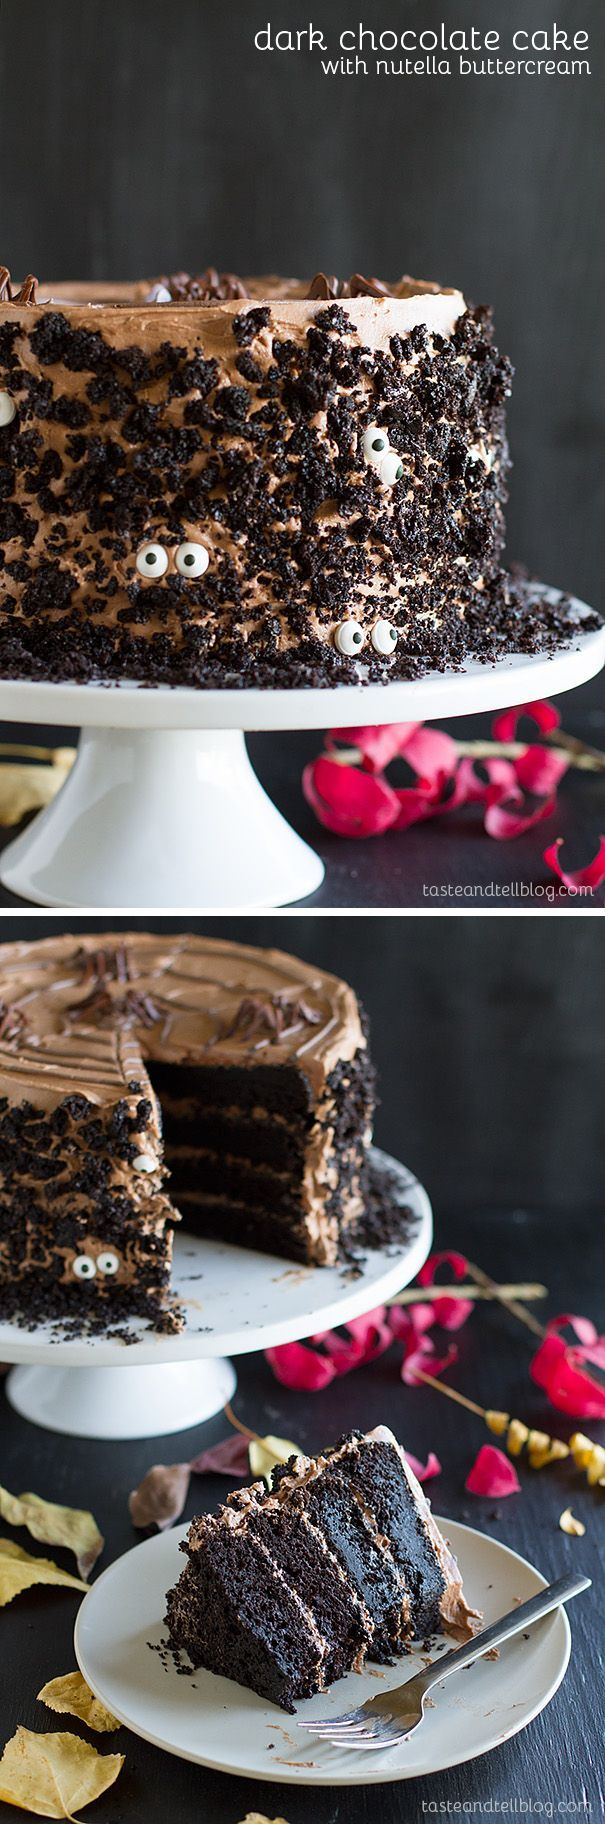 Dark and rich, this Dark Chocolate Cake with Nutella Buttercream is the perfect centerpiece for any party. Chocolate lovers will instantly fall in love with this dark chocolate cake!